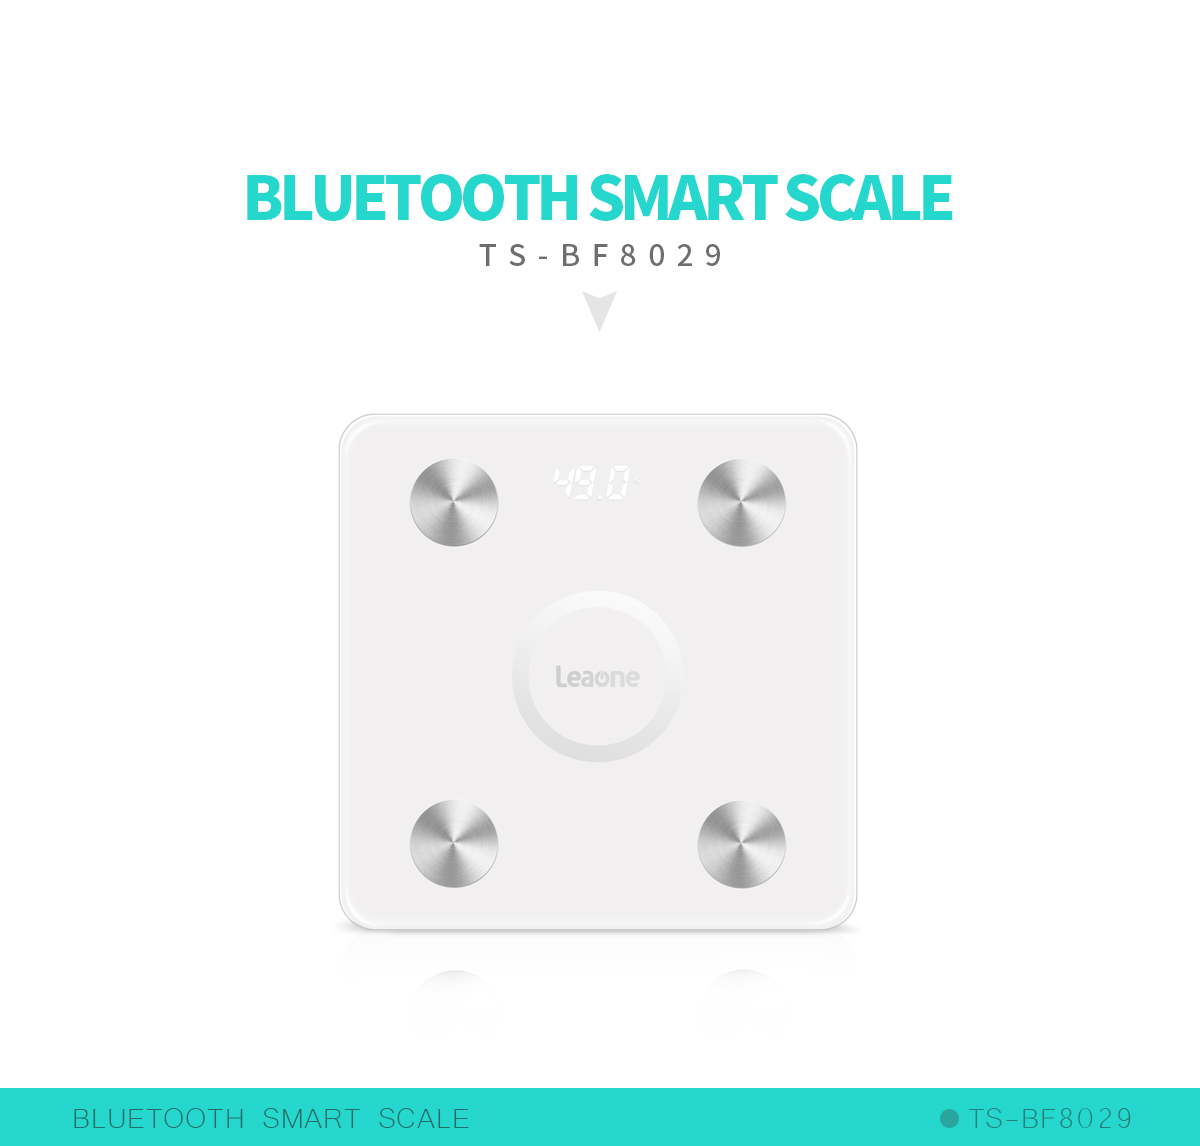 TS-BF8030 2018 New Bluetooth Smart Electronic Personal Weight Digital Weighing Scale, High Accuracy Digital Body Weighing Scale